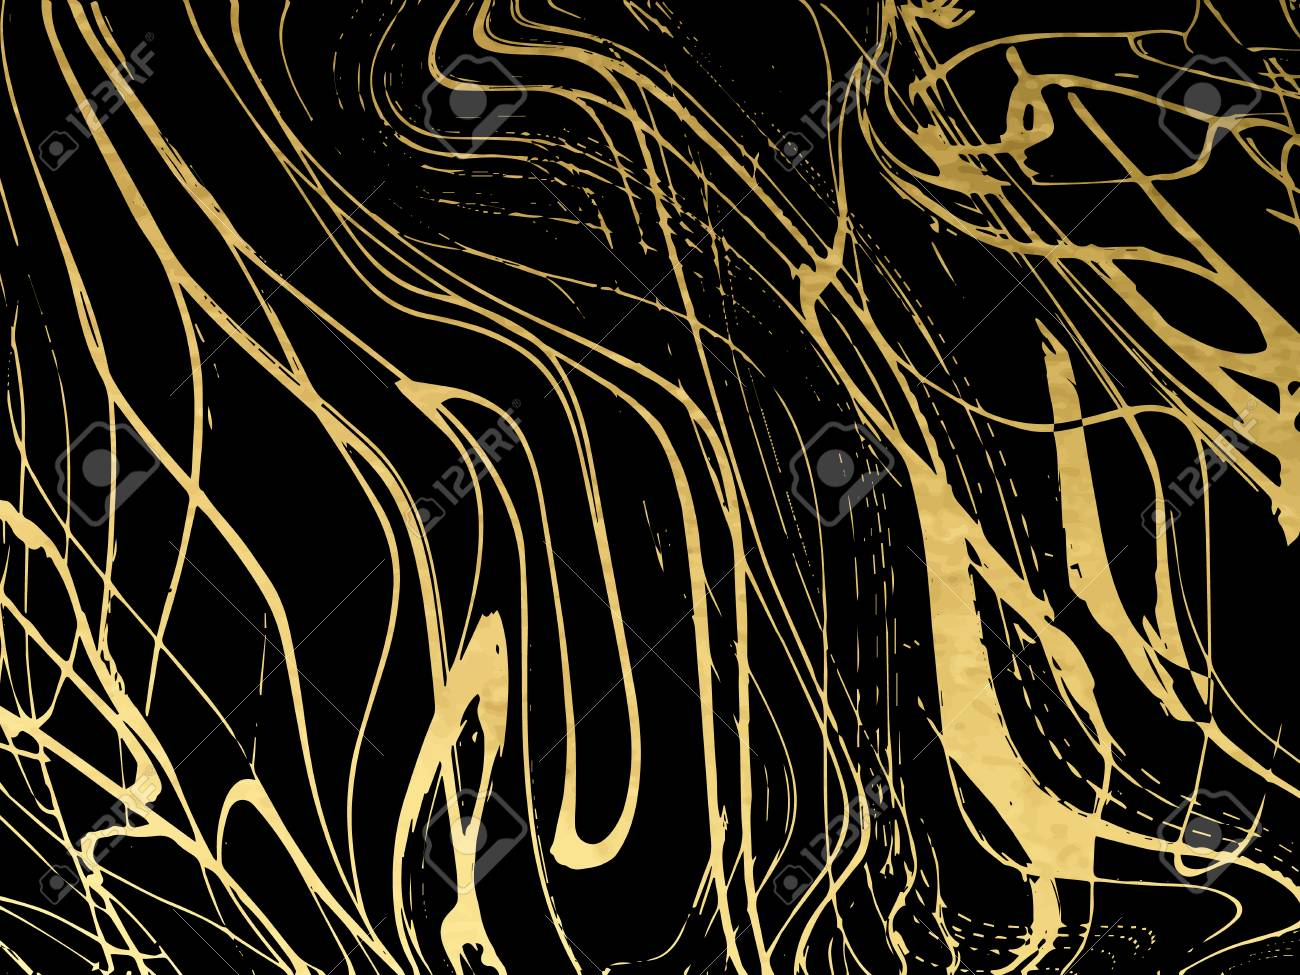 Gold, black, white marble template, covers design, marble texture, backgrounds. Trendy pattern graphic poster brochure cards Vector illustration - 105443245